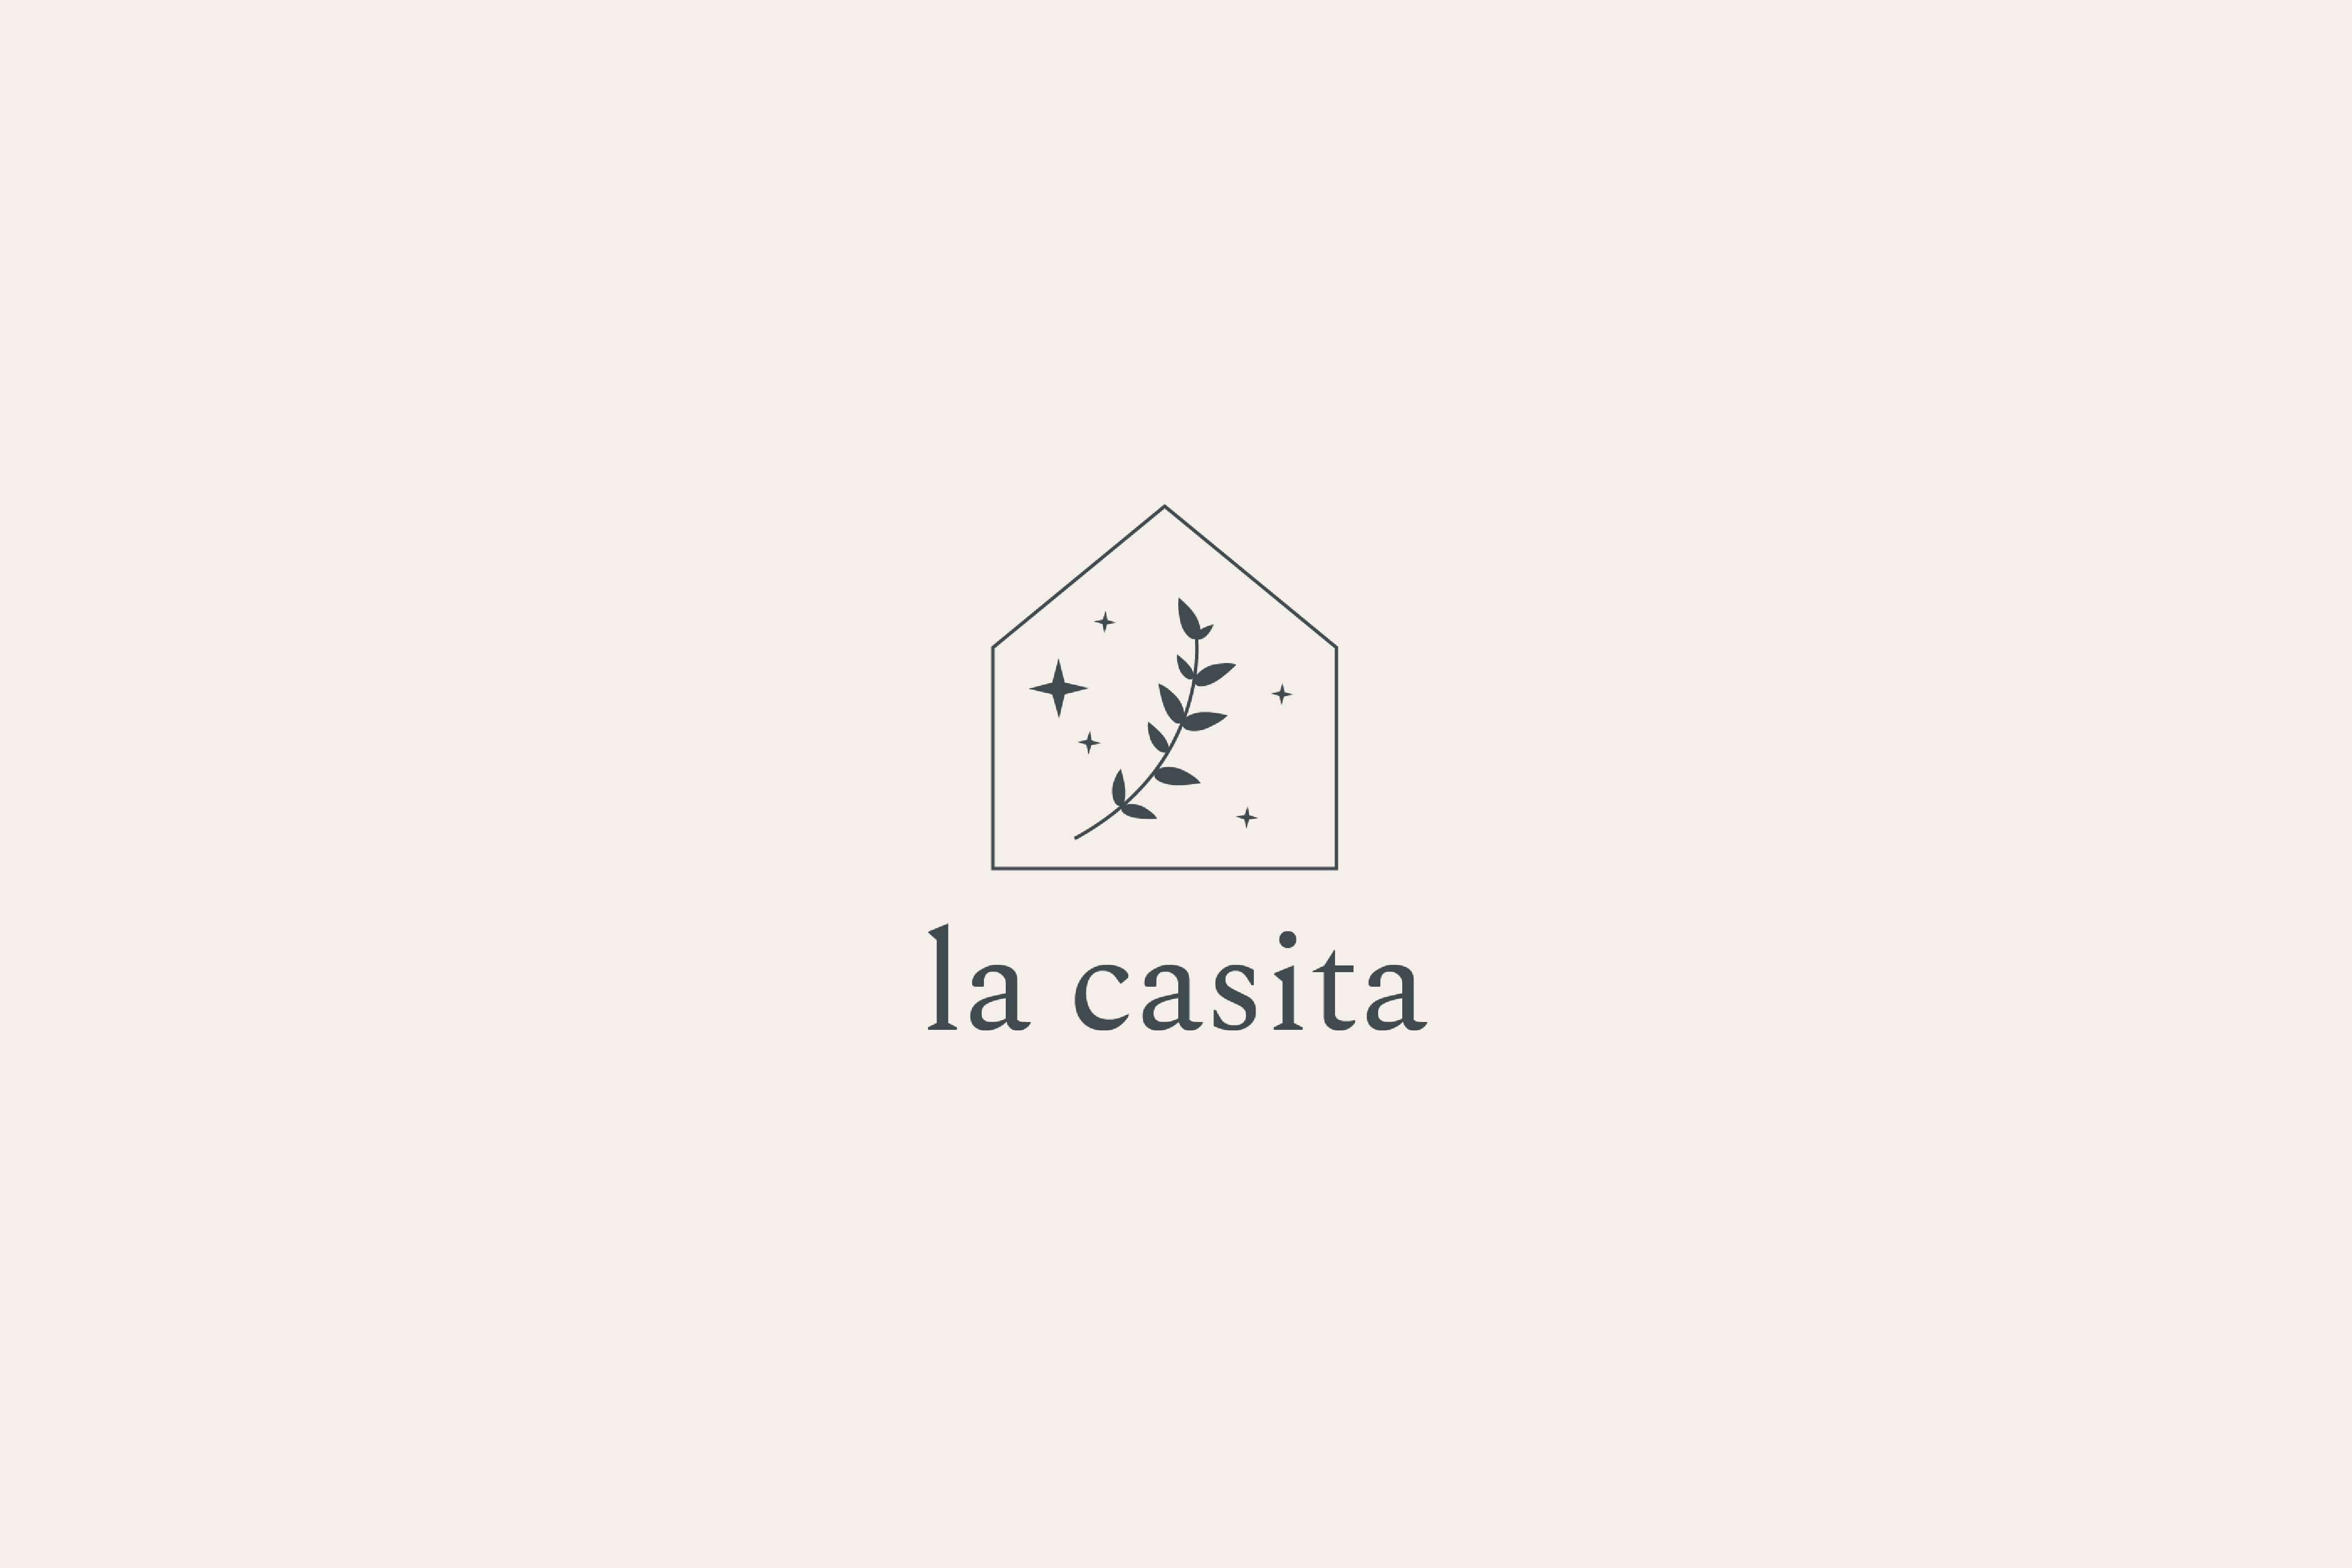 La Casita logo, a small house with branch and stars inside